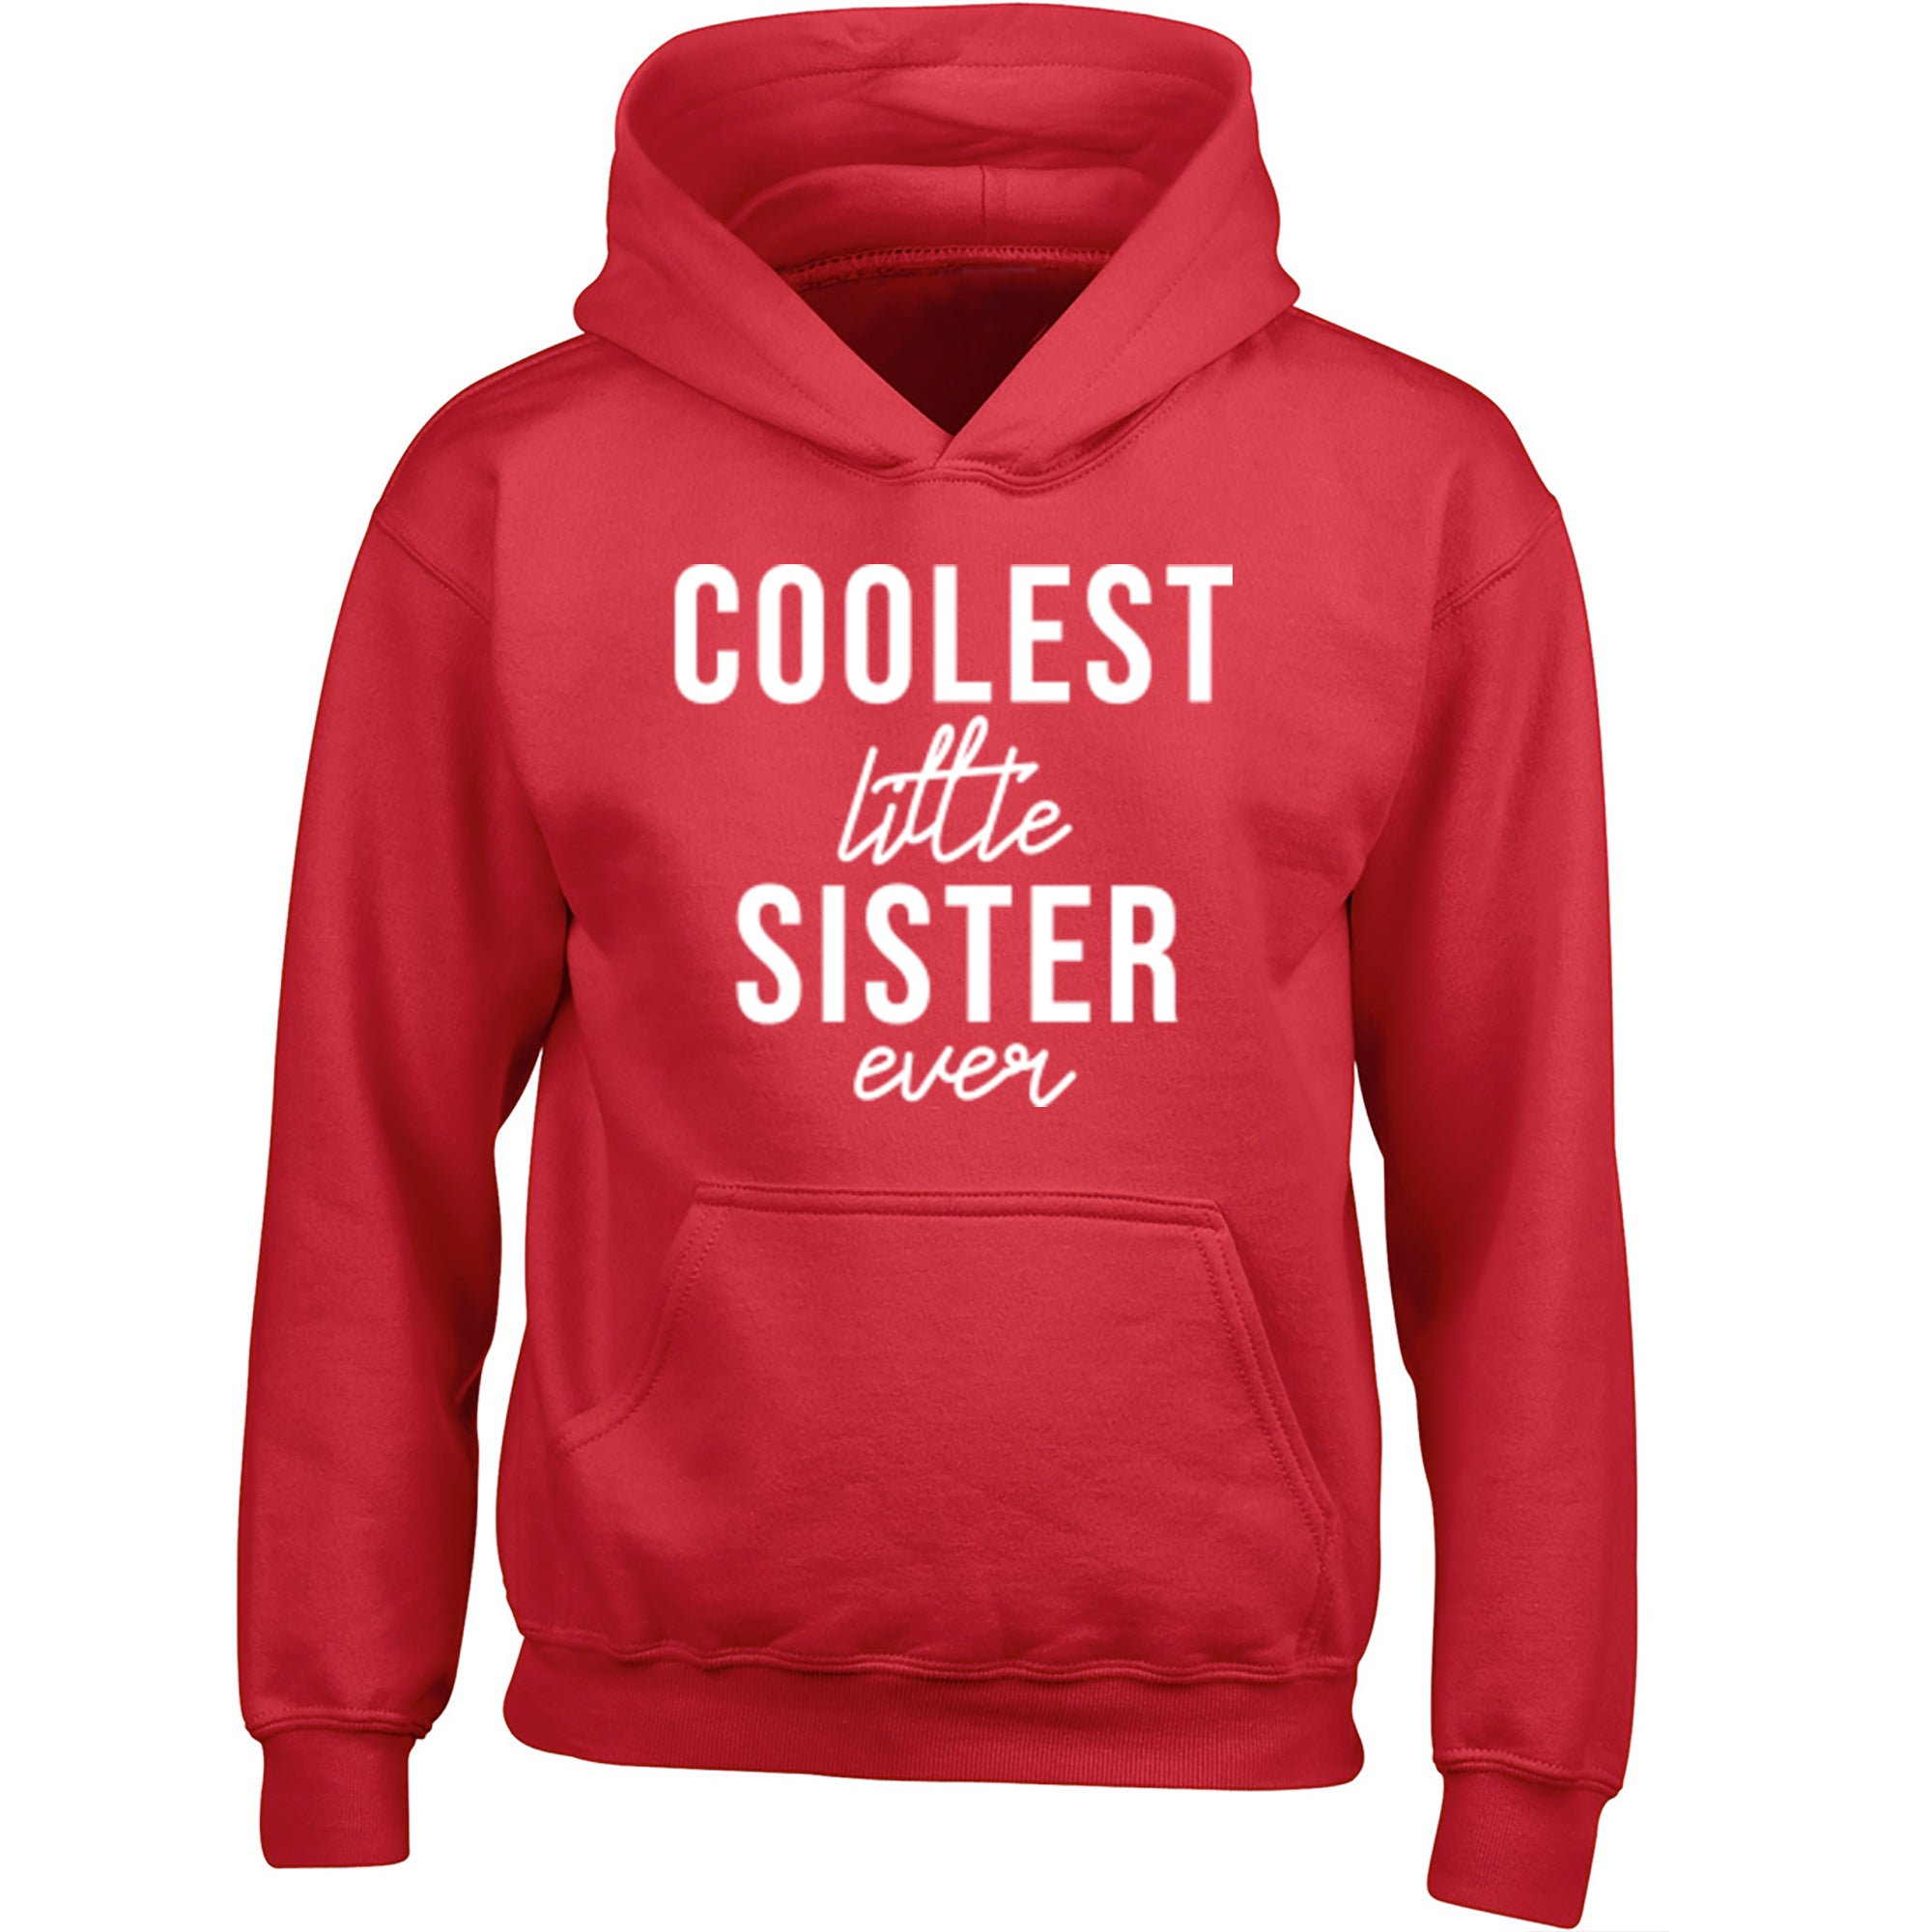 Coolest Little Sister Ever Childrens Ages 3/4-12/14 Unisex Hoodie S0505 - Illustrated Identity Ltd.